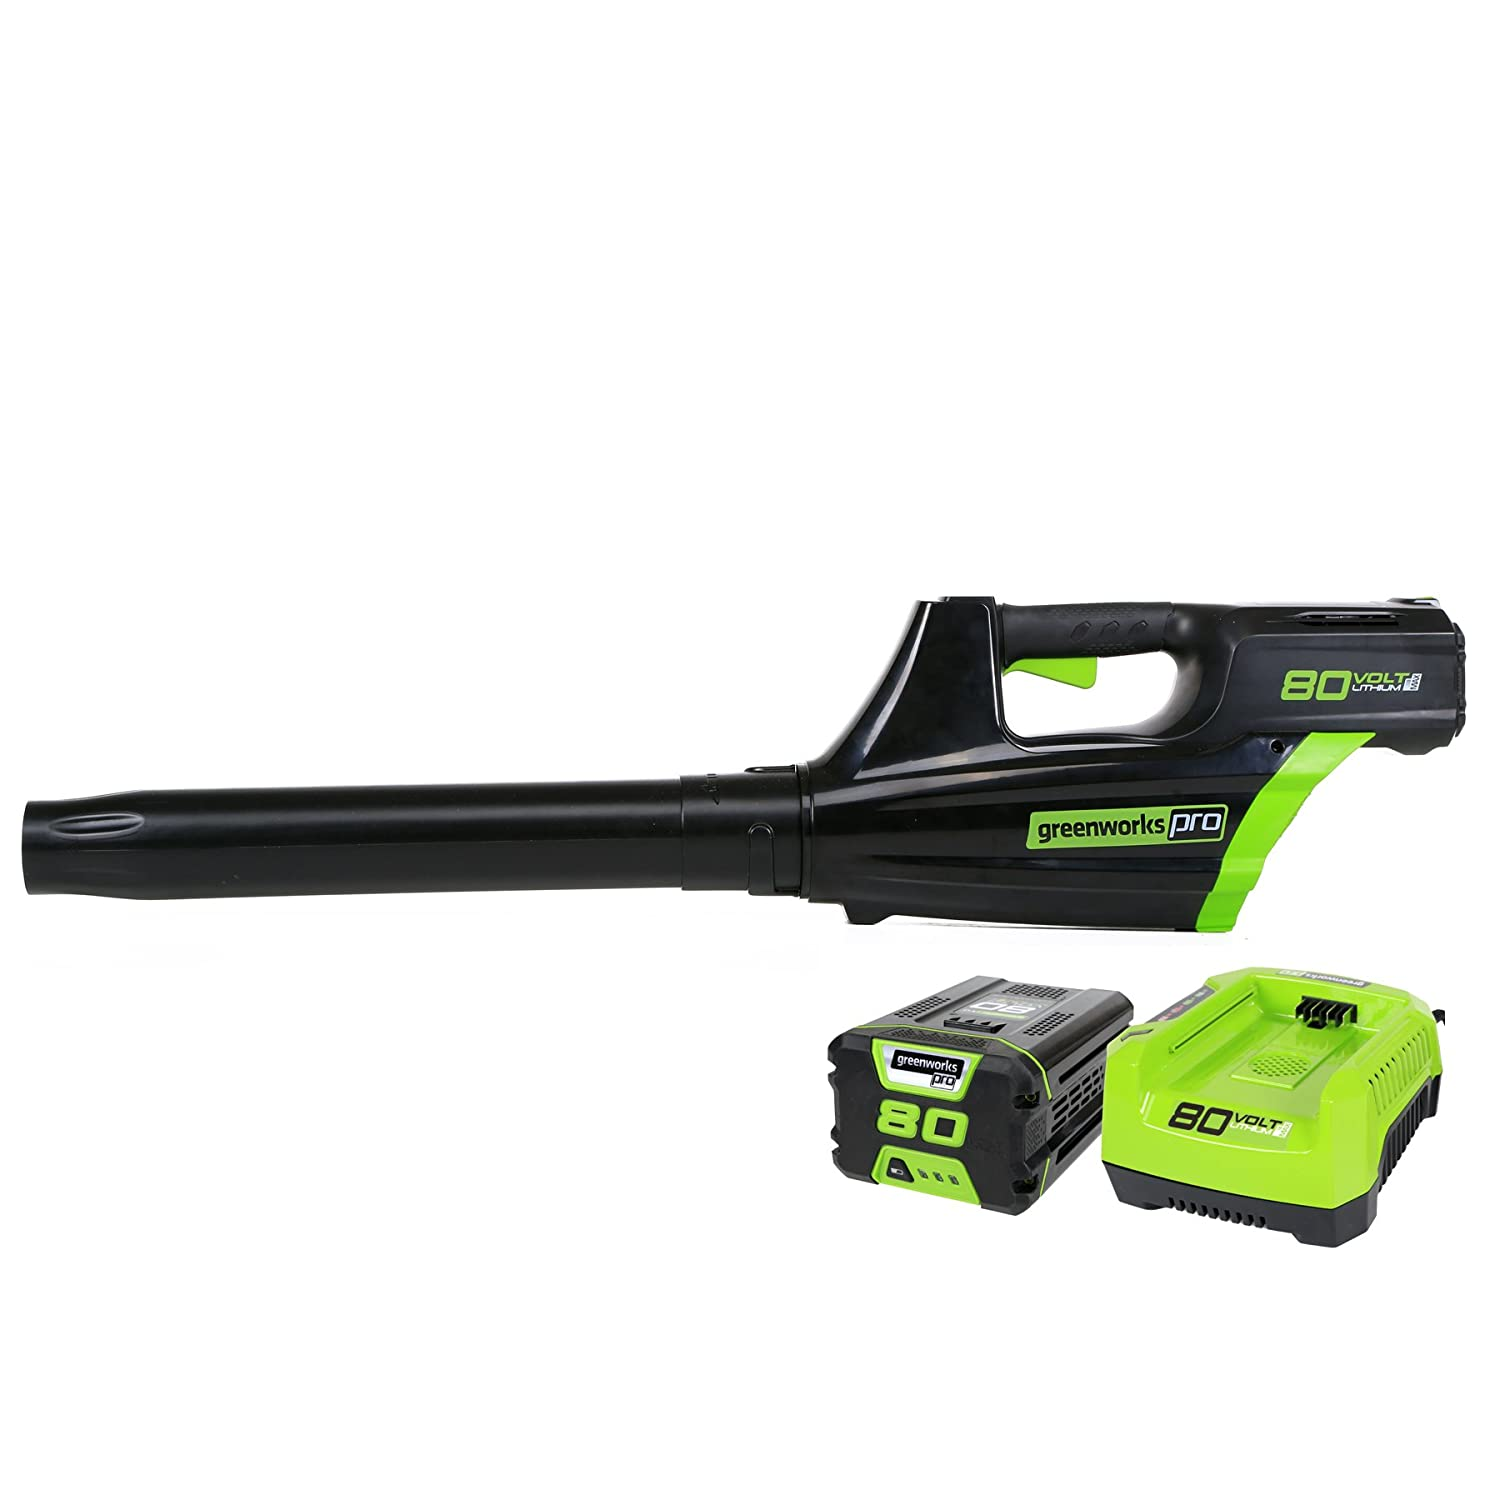 Greenworks Pro 80V Cordless Brushless Axial Blower, Battery and Rapid Charger Included